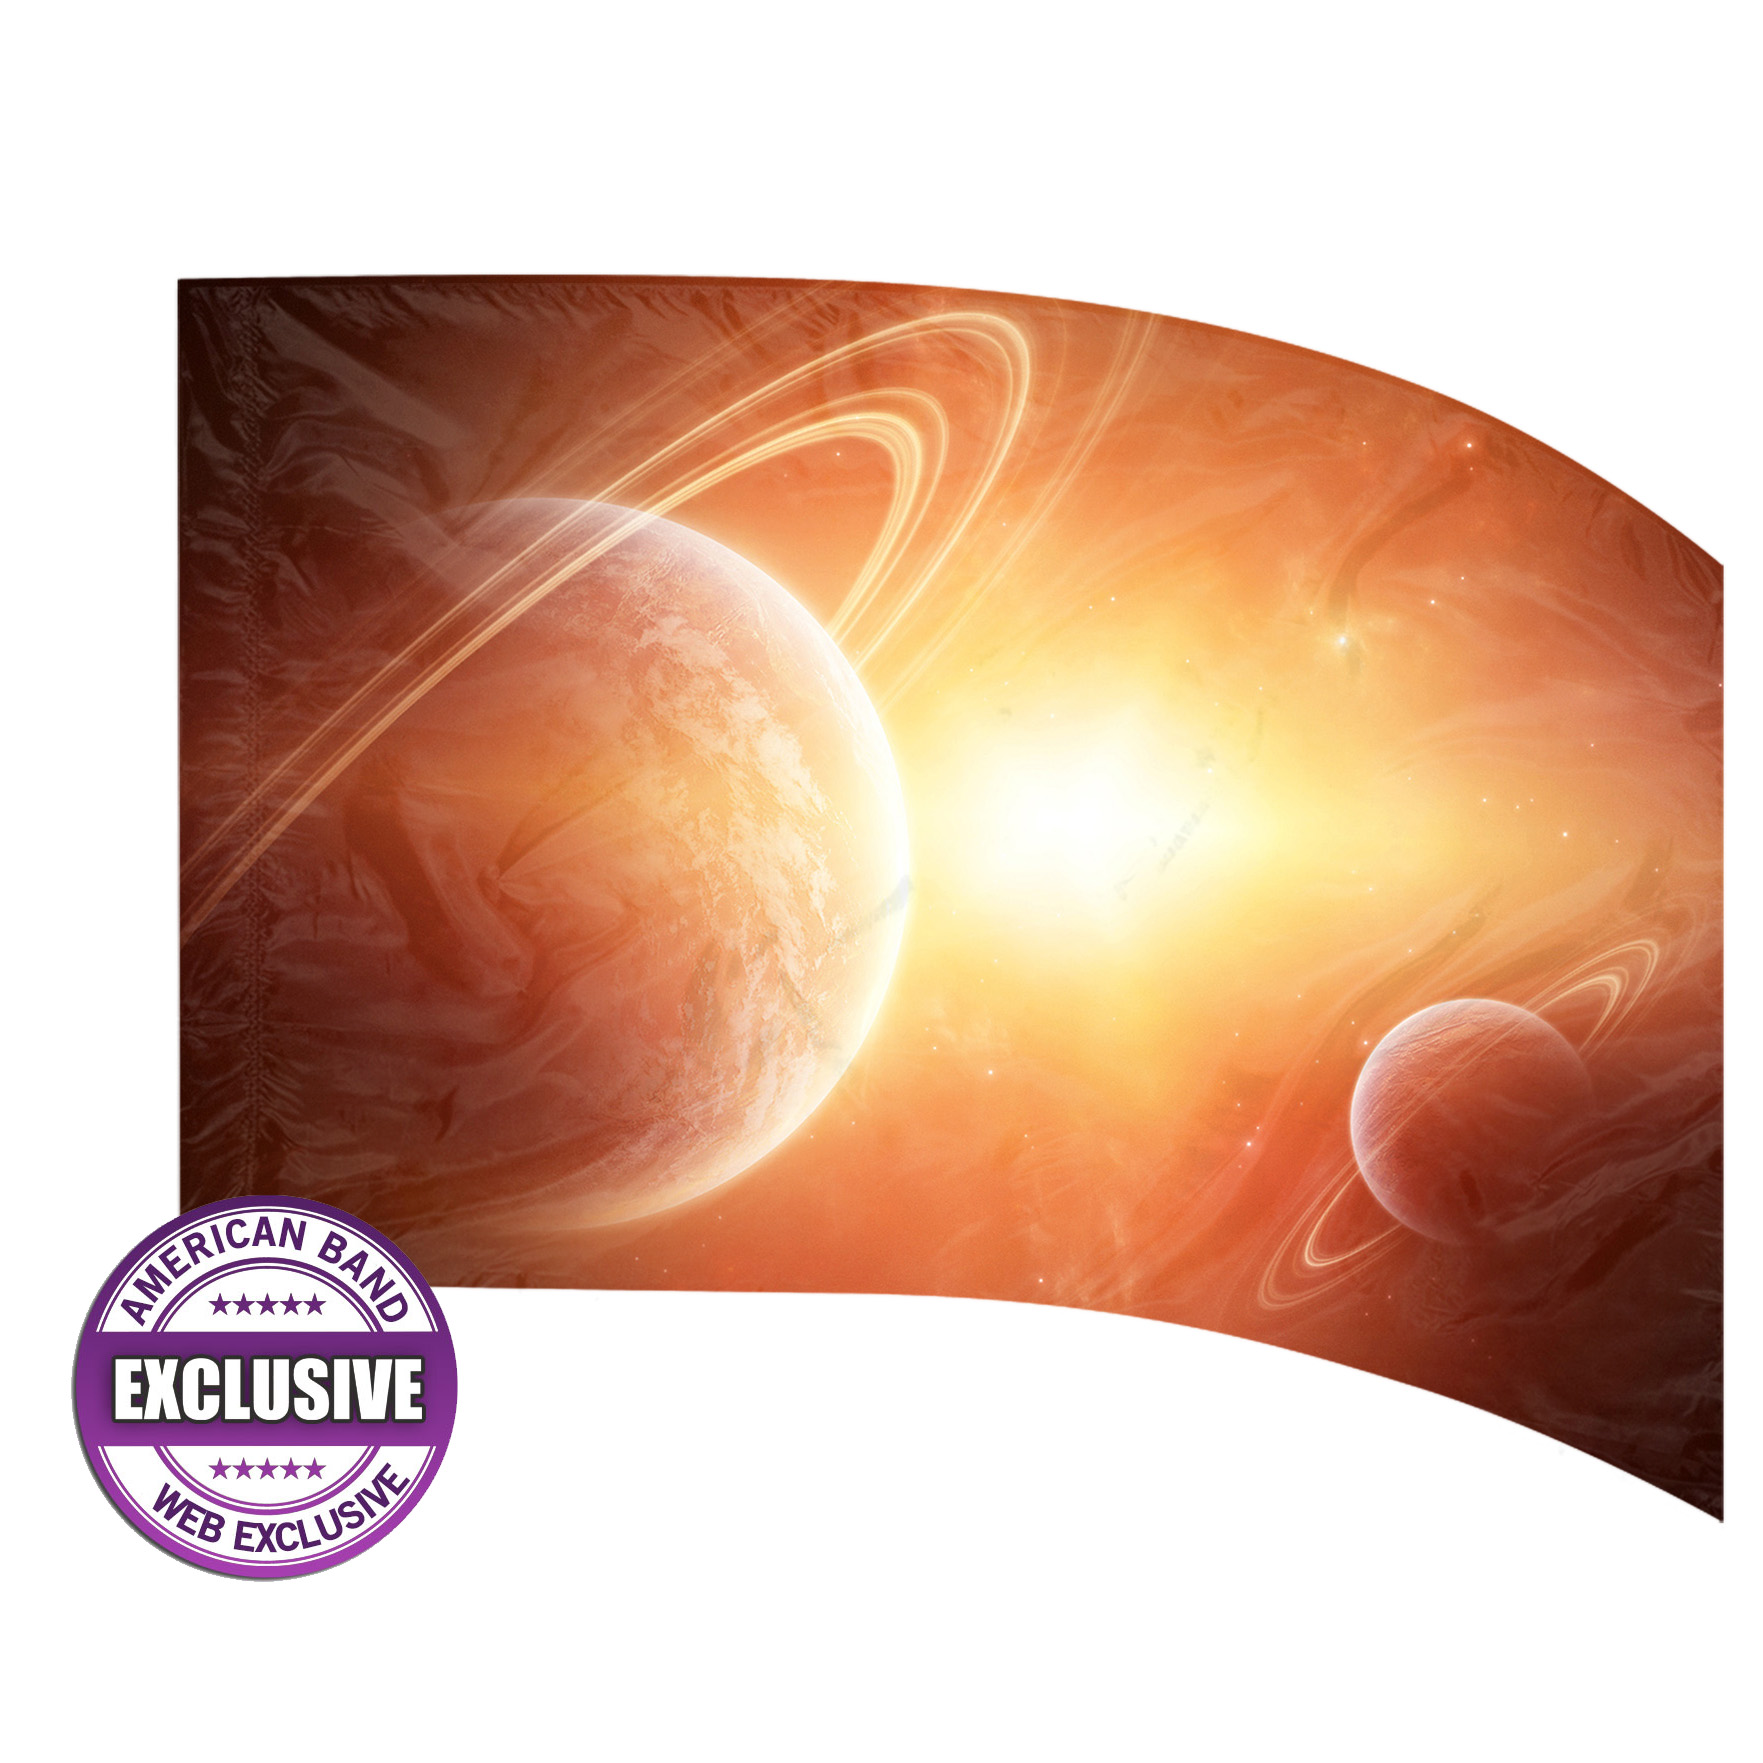 Made-to-Order Digital Cosmos Flags: Style 9